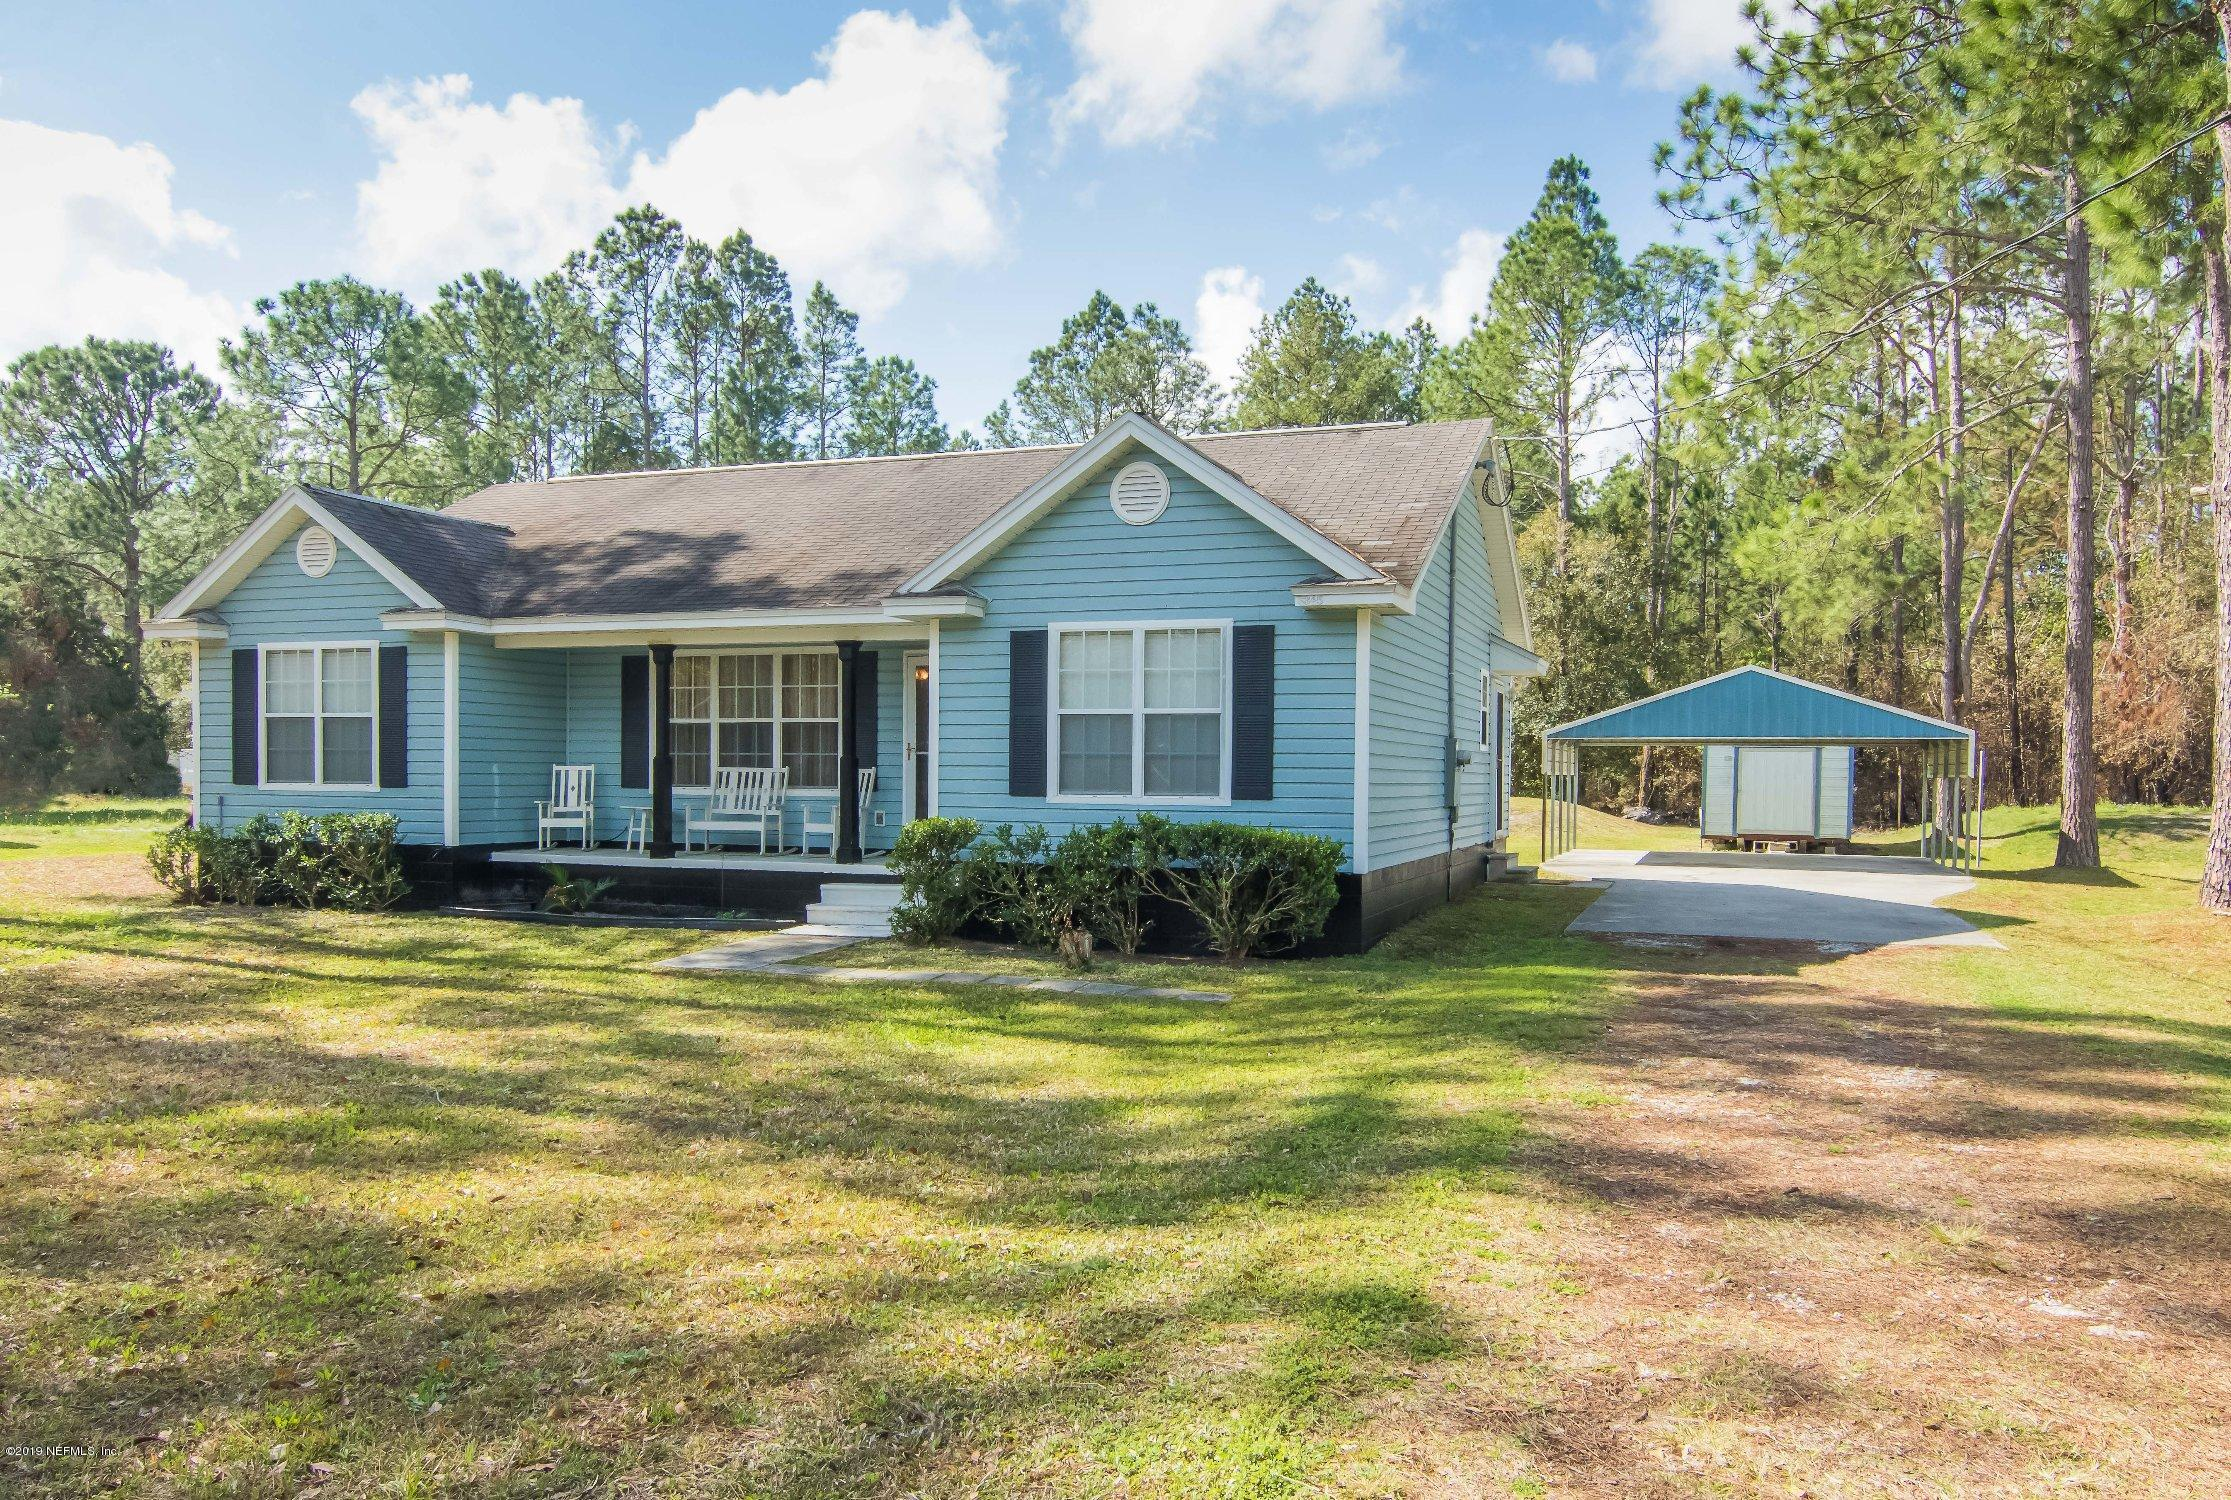 6345 ARMSTRONG, ELKTON, FLORIDA 32033, 3 Bedrooms Bedrooms, ,2 BathroomsBathrooms,Residential - single family,For sale,ARMSTRONG,974703